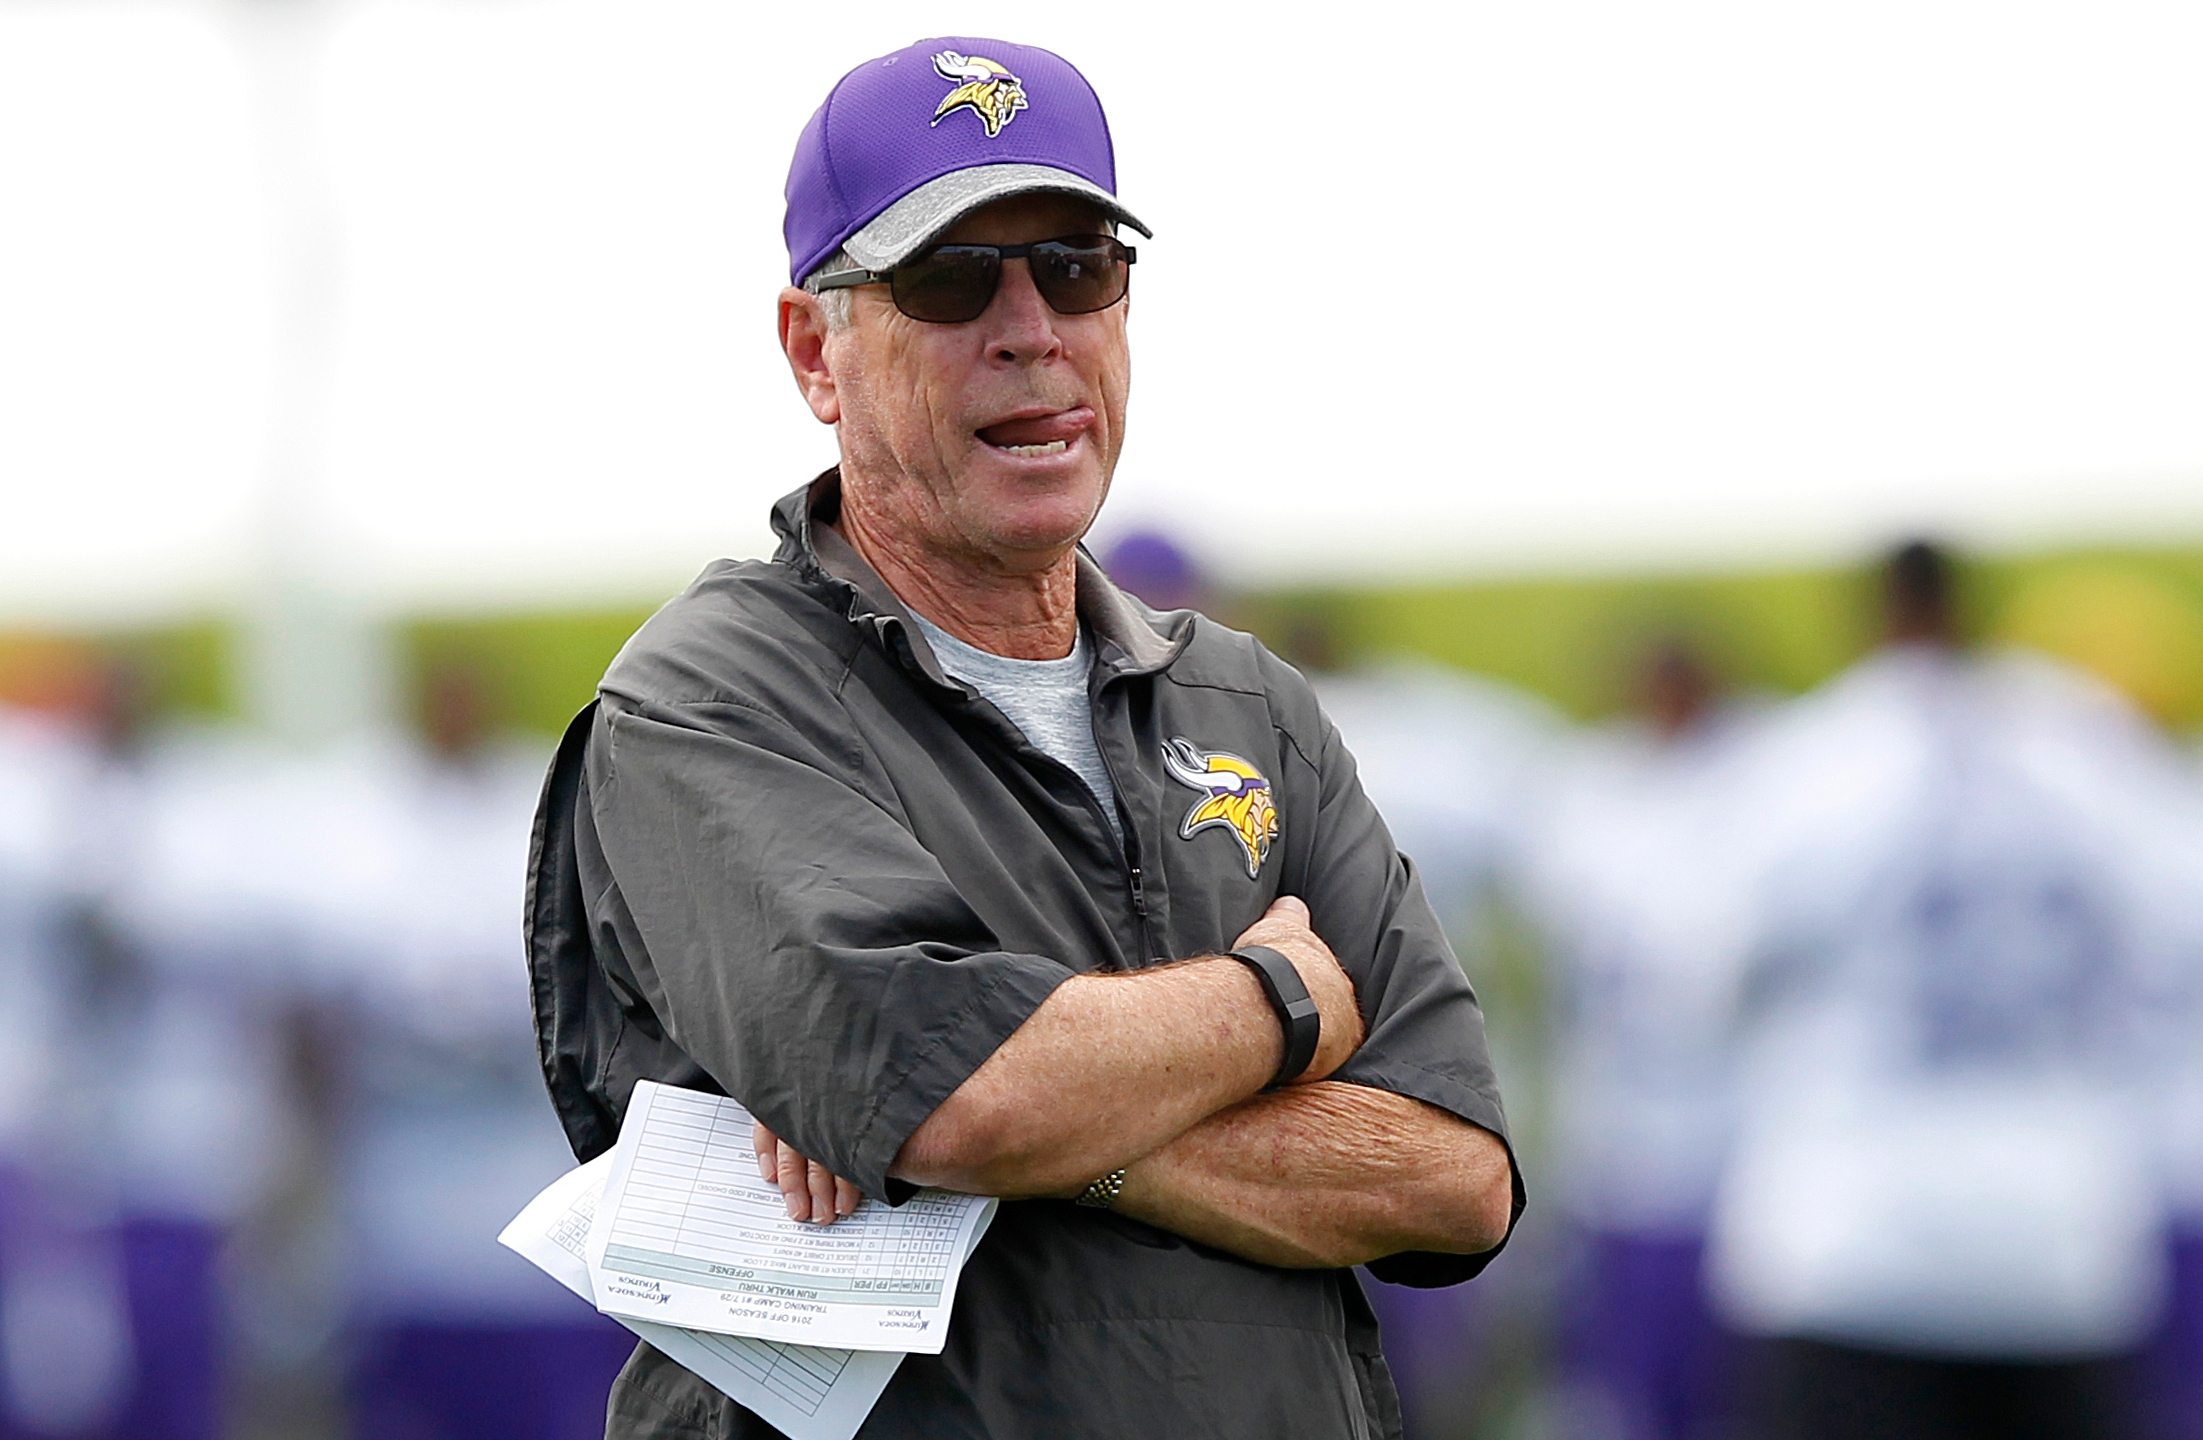 FILE PHOTO Norv Turner Photo by Andy Clayton-King, AP Photo_236910